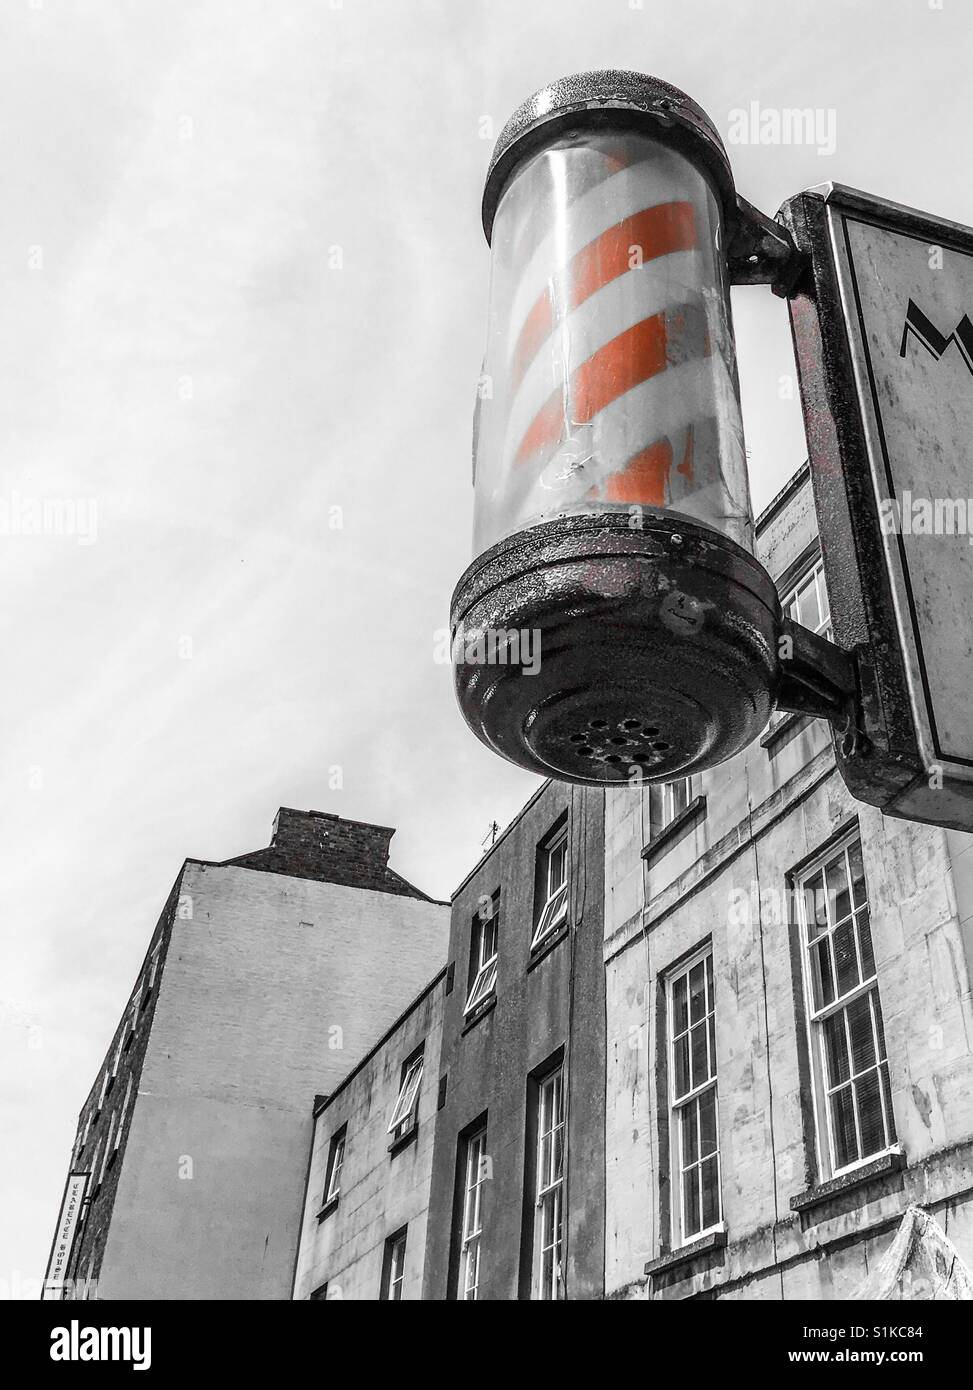 Barbers red and white pole - Stock Image